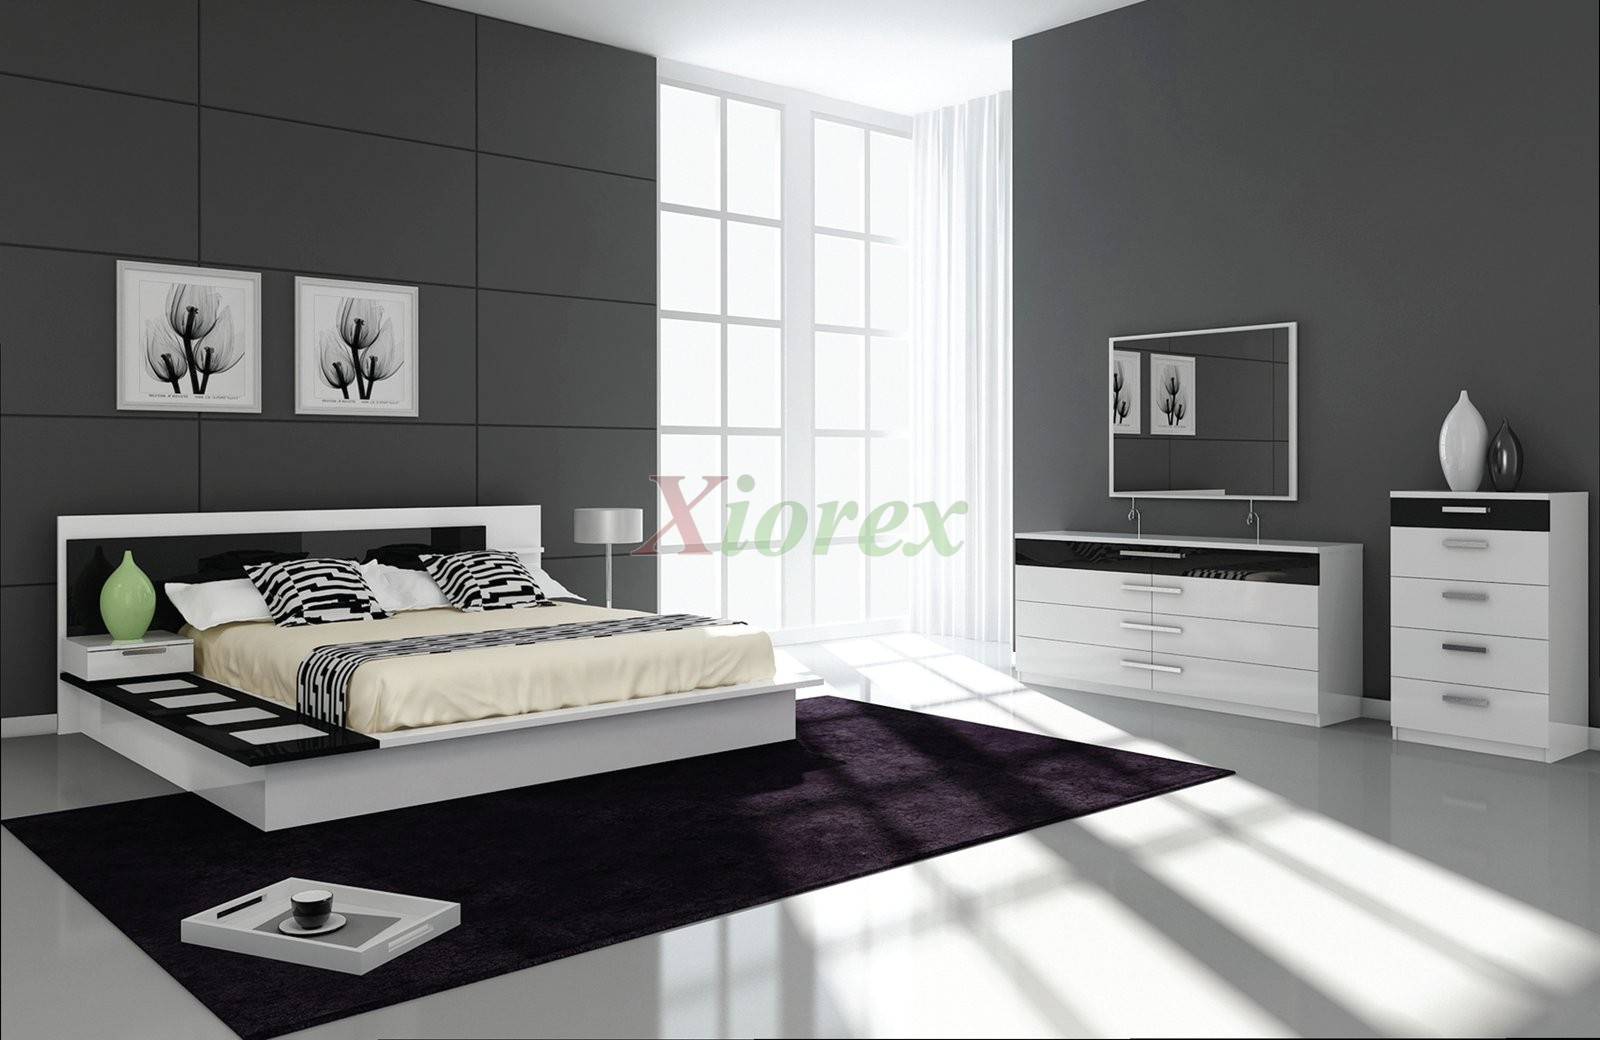 Draco Black and White Contemporary Bedroom Furniture Sets ...